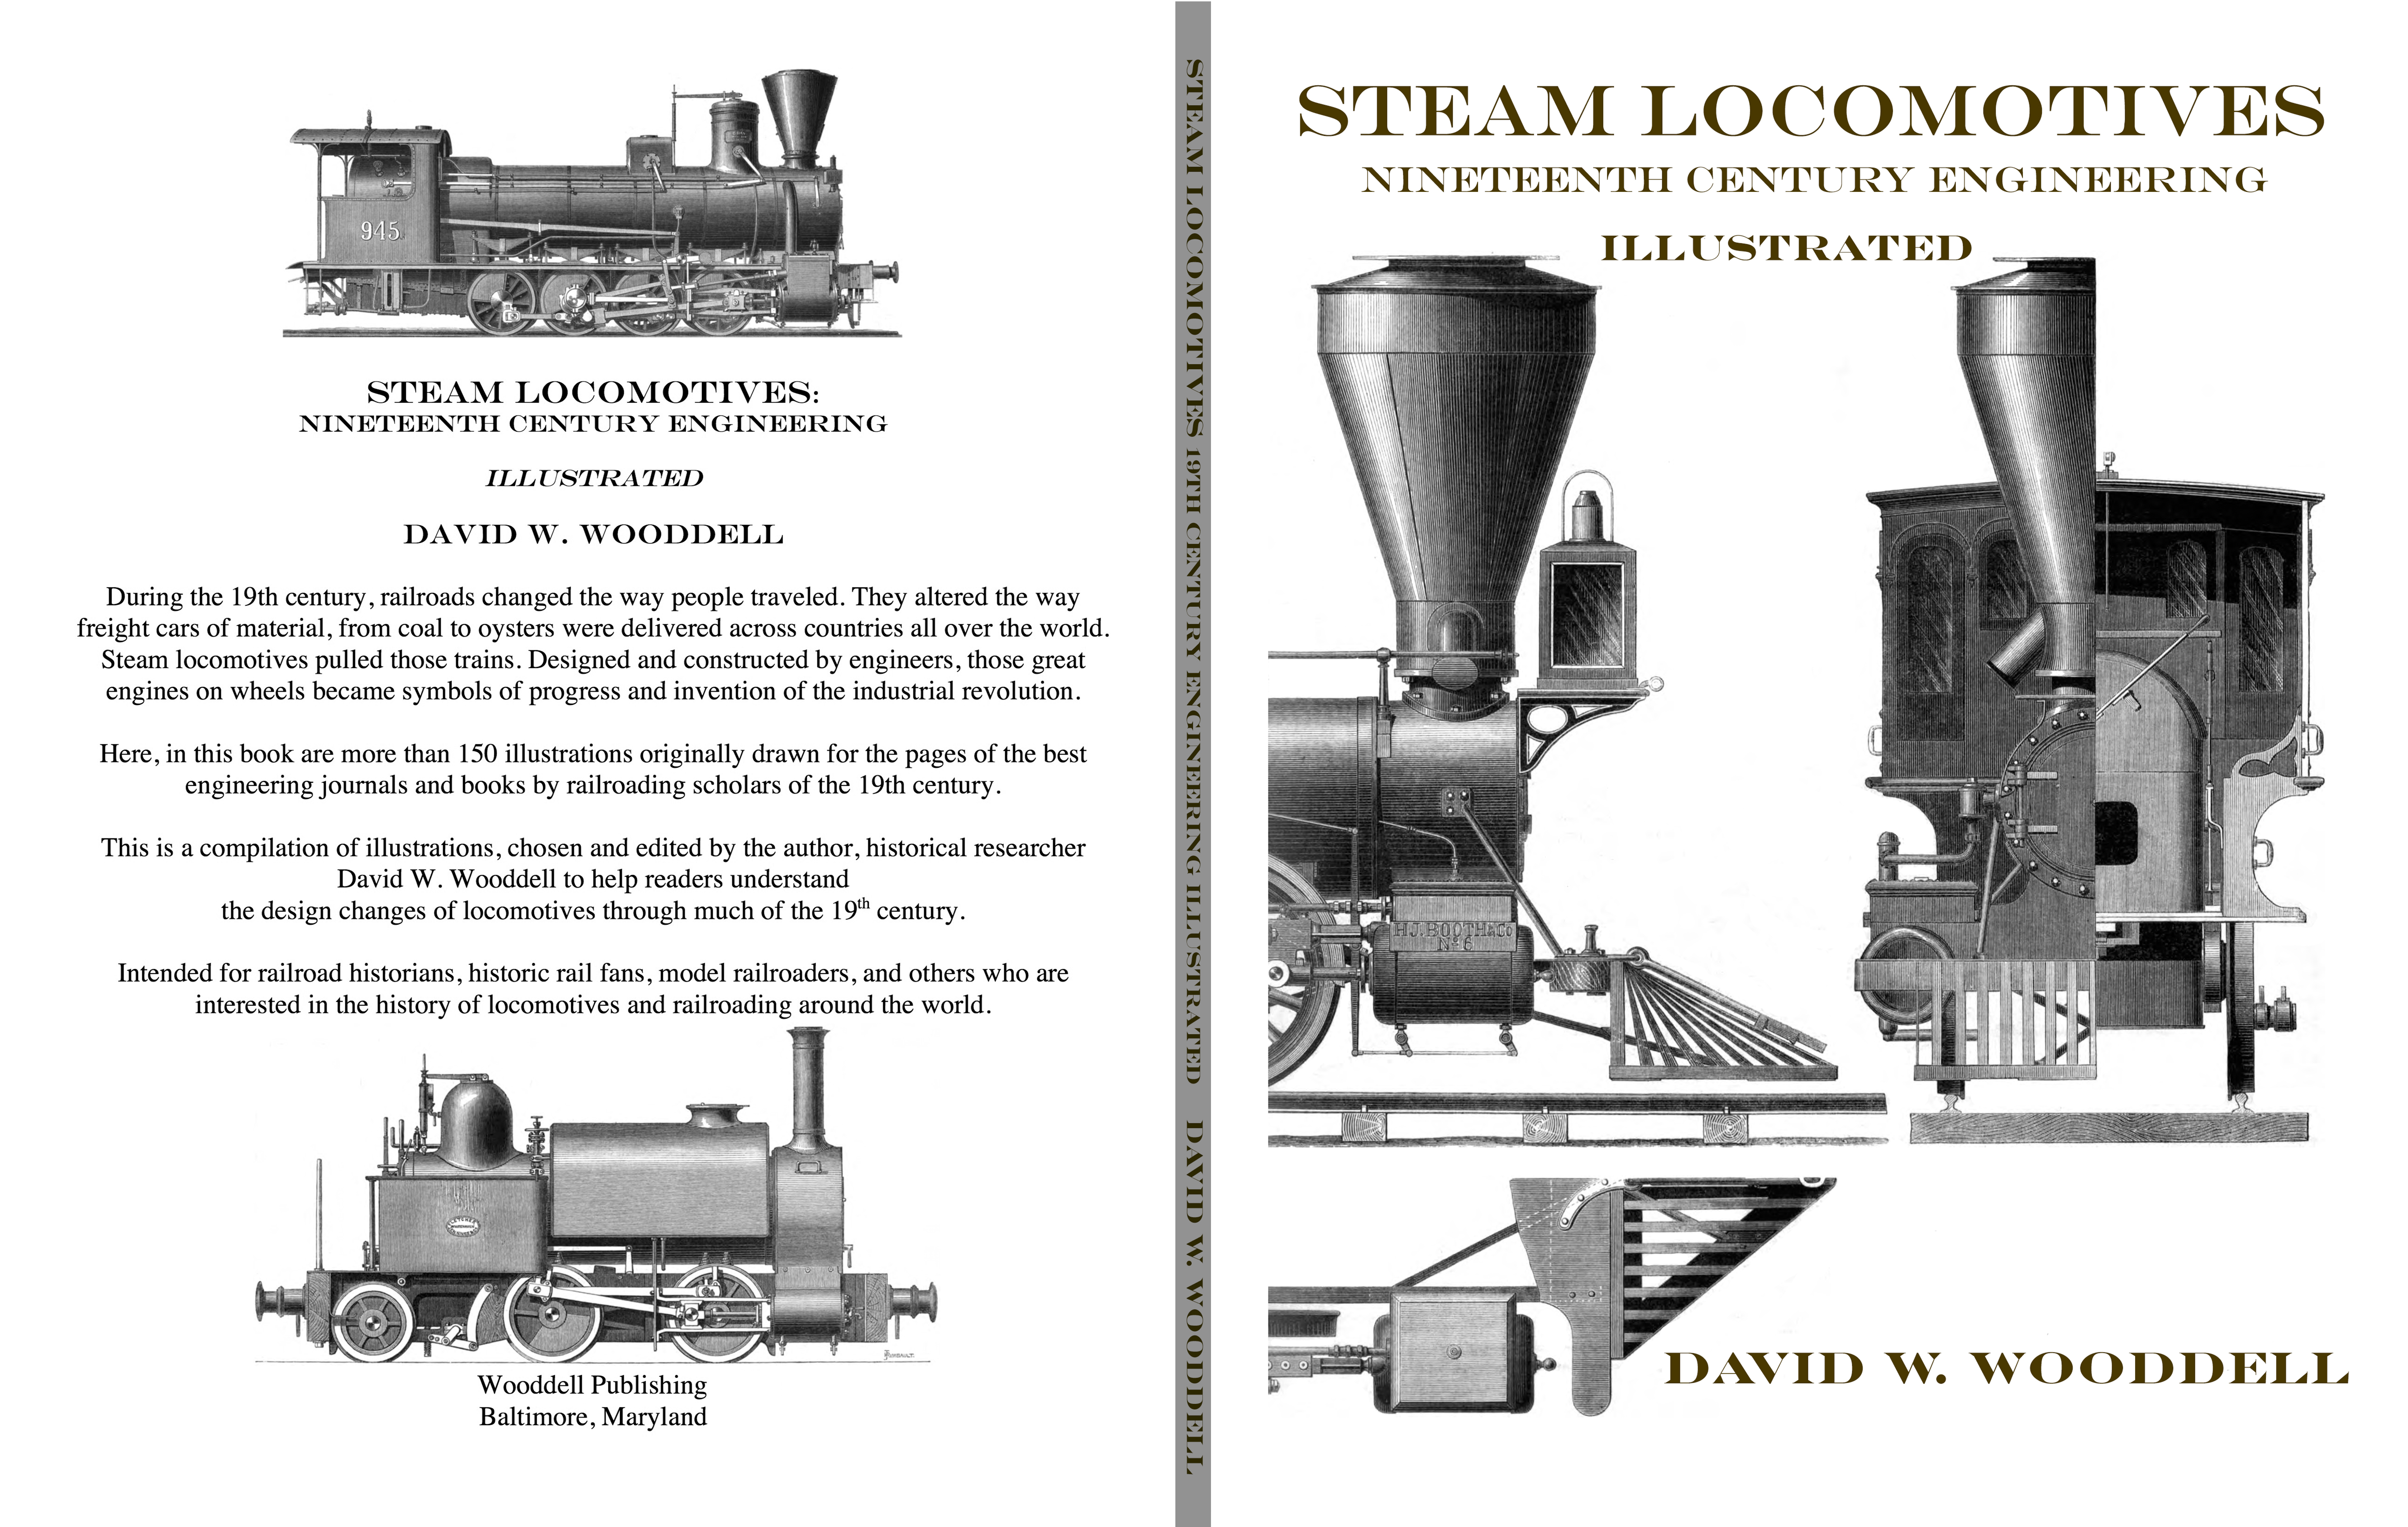 Steam Locomotives Cover front and back